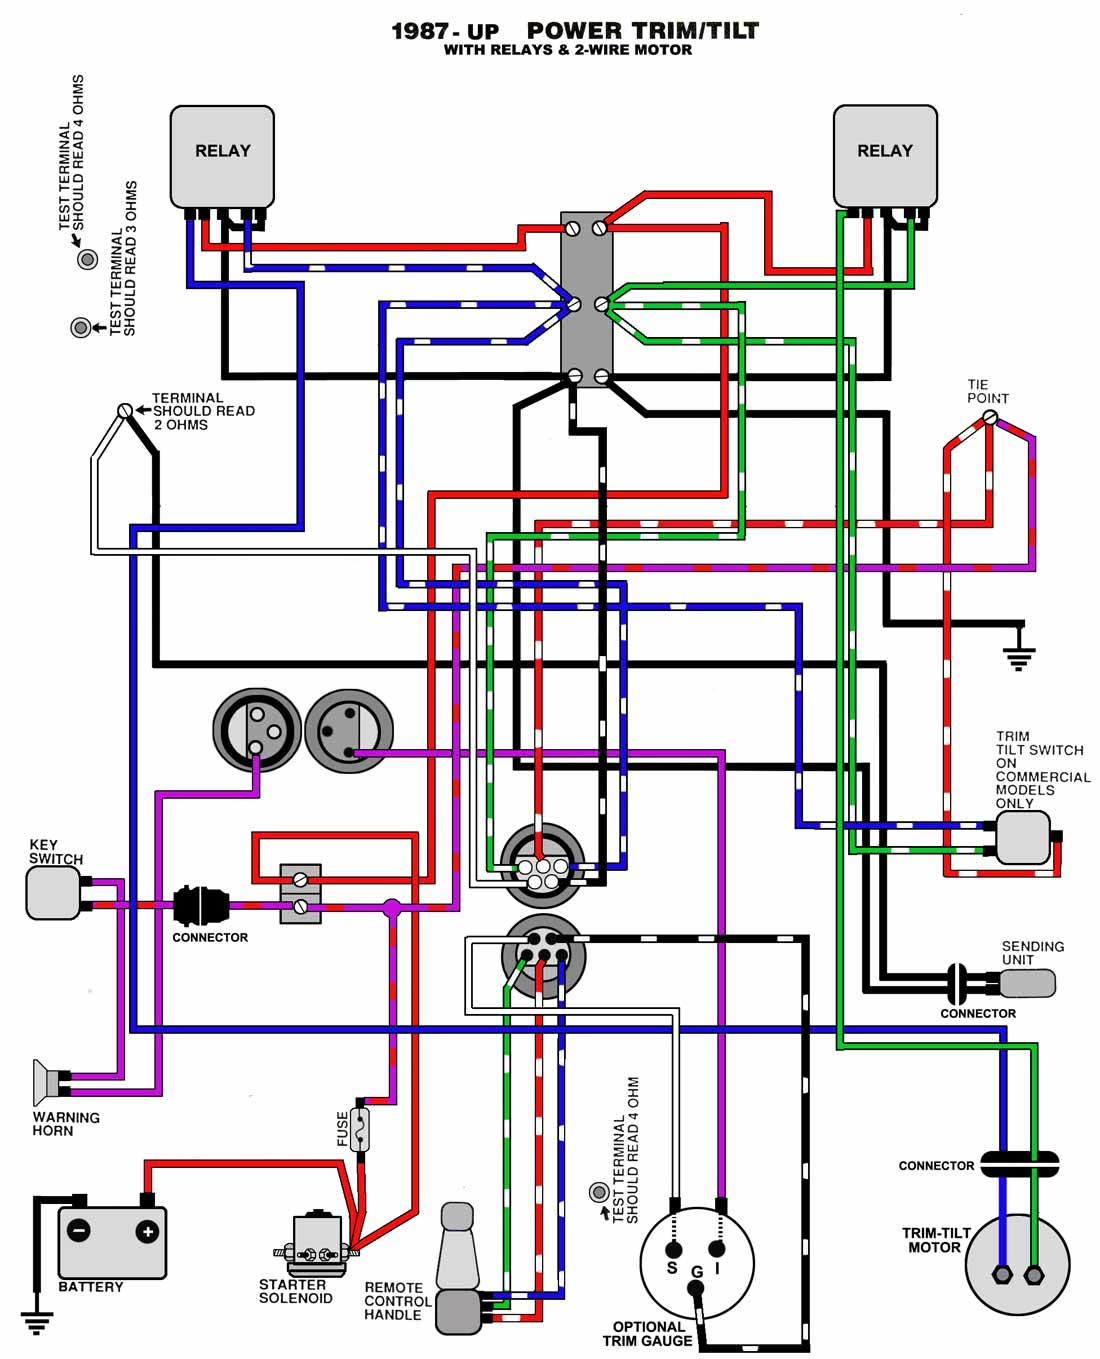 TnT_87_UP mastertech marine evinrude johnson outboard wiring diagrams johnson outboard ignition switch wiring diagram at couponss.co